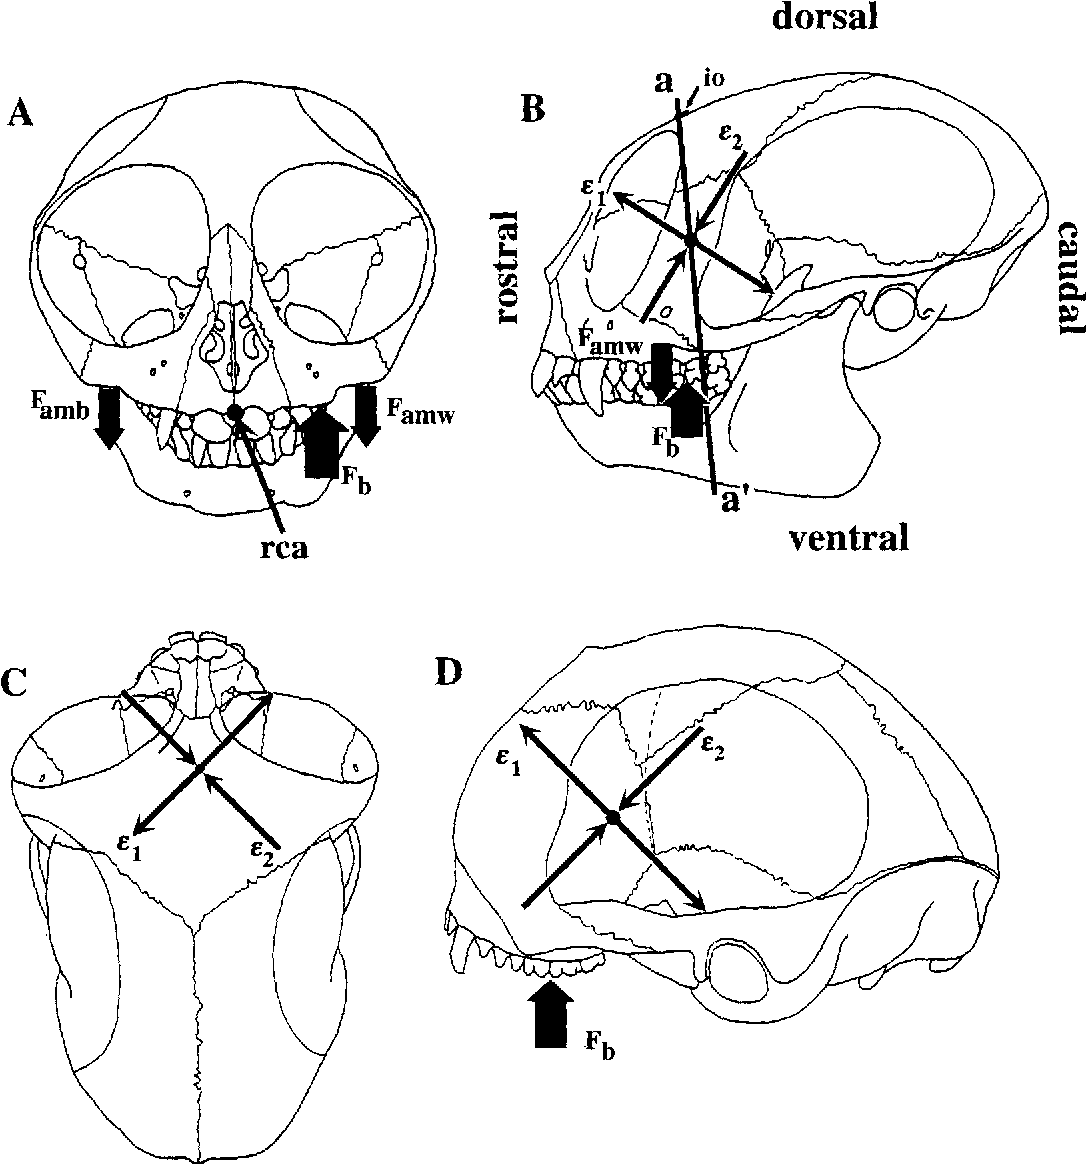 hight resolution of diagram illustrating patterns of strain predicted by the facial torsion hypothesis